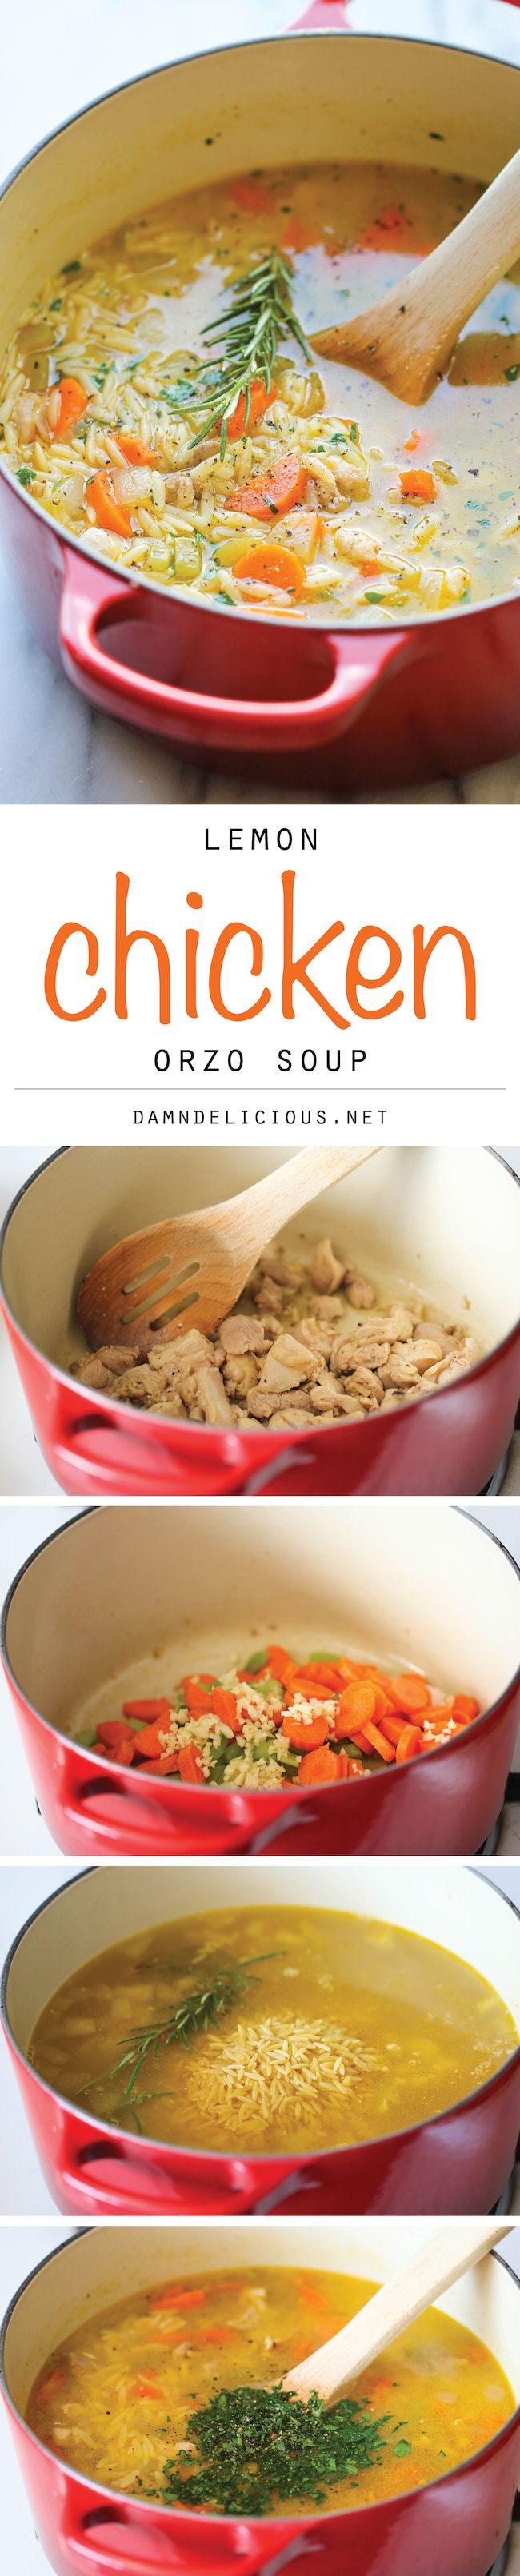 1000+ images about Recipes -- Soups on! on Pinterest ...